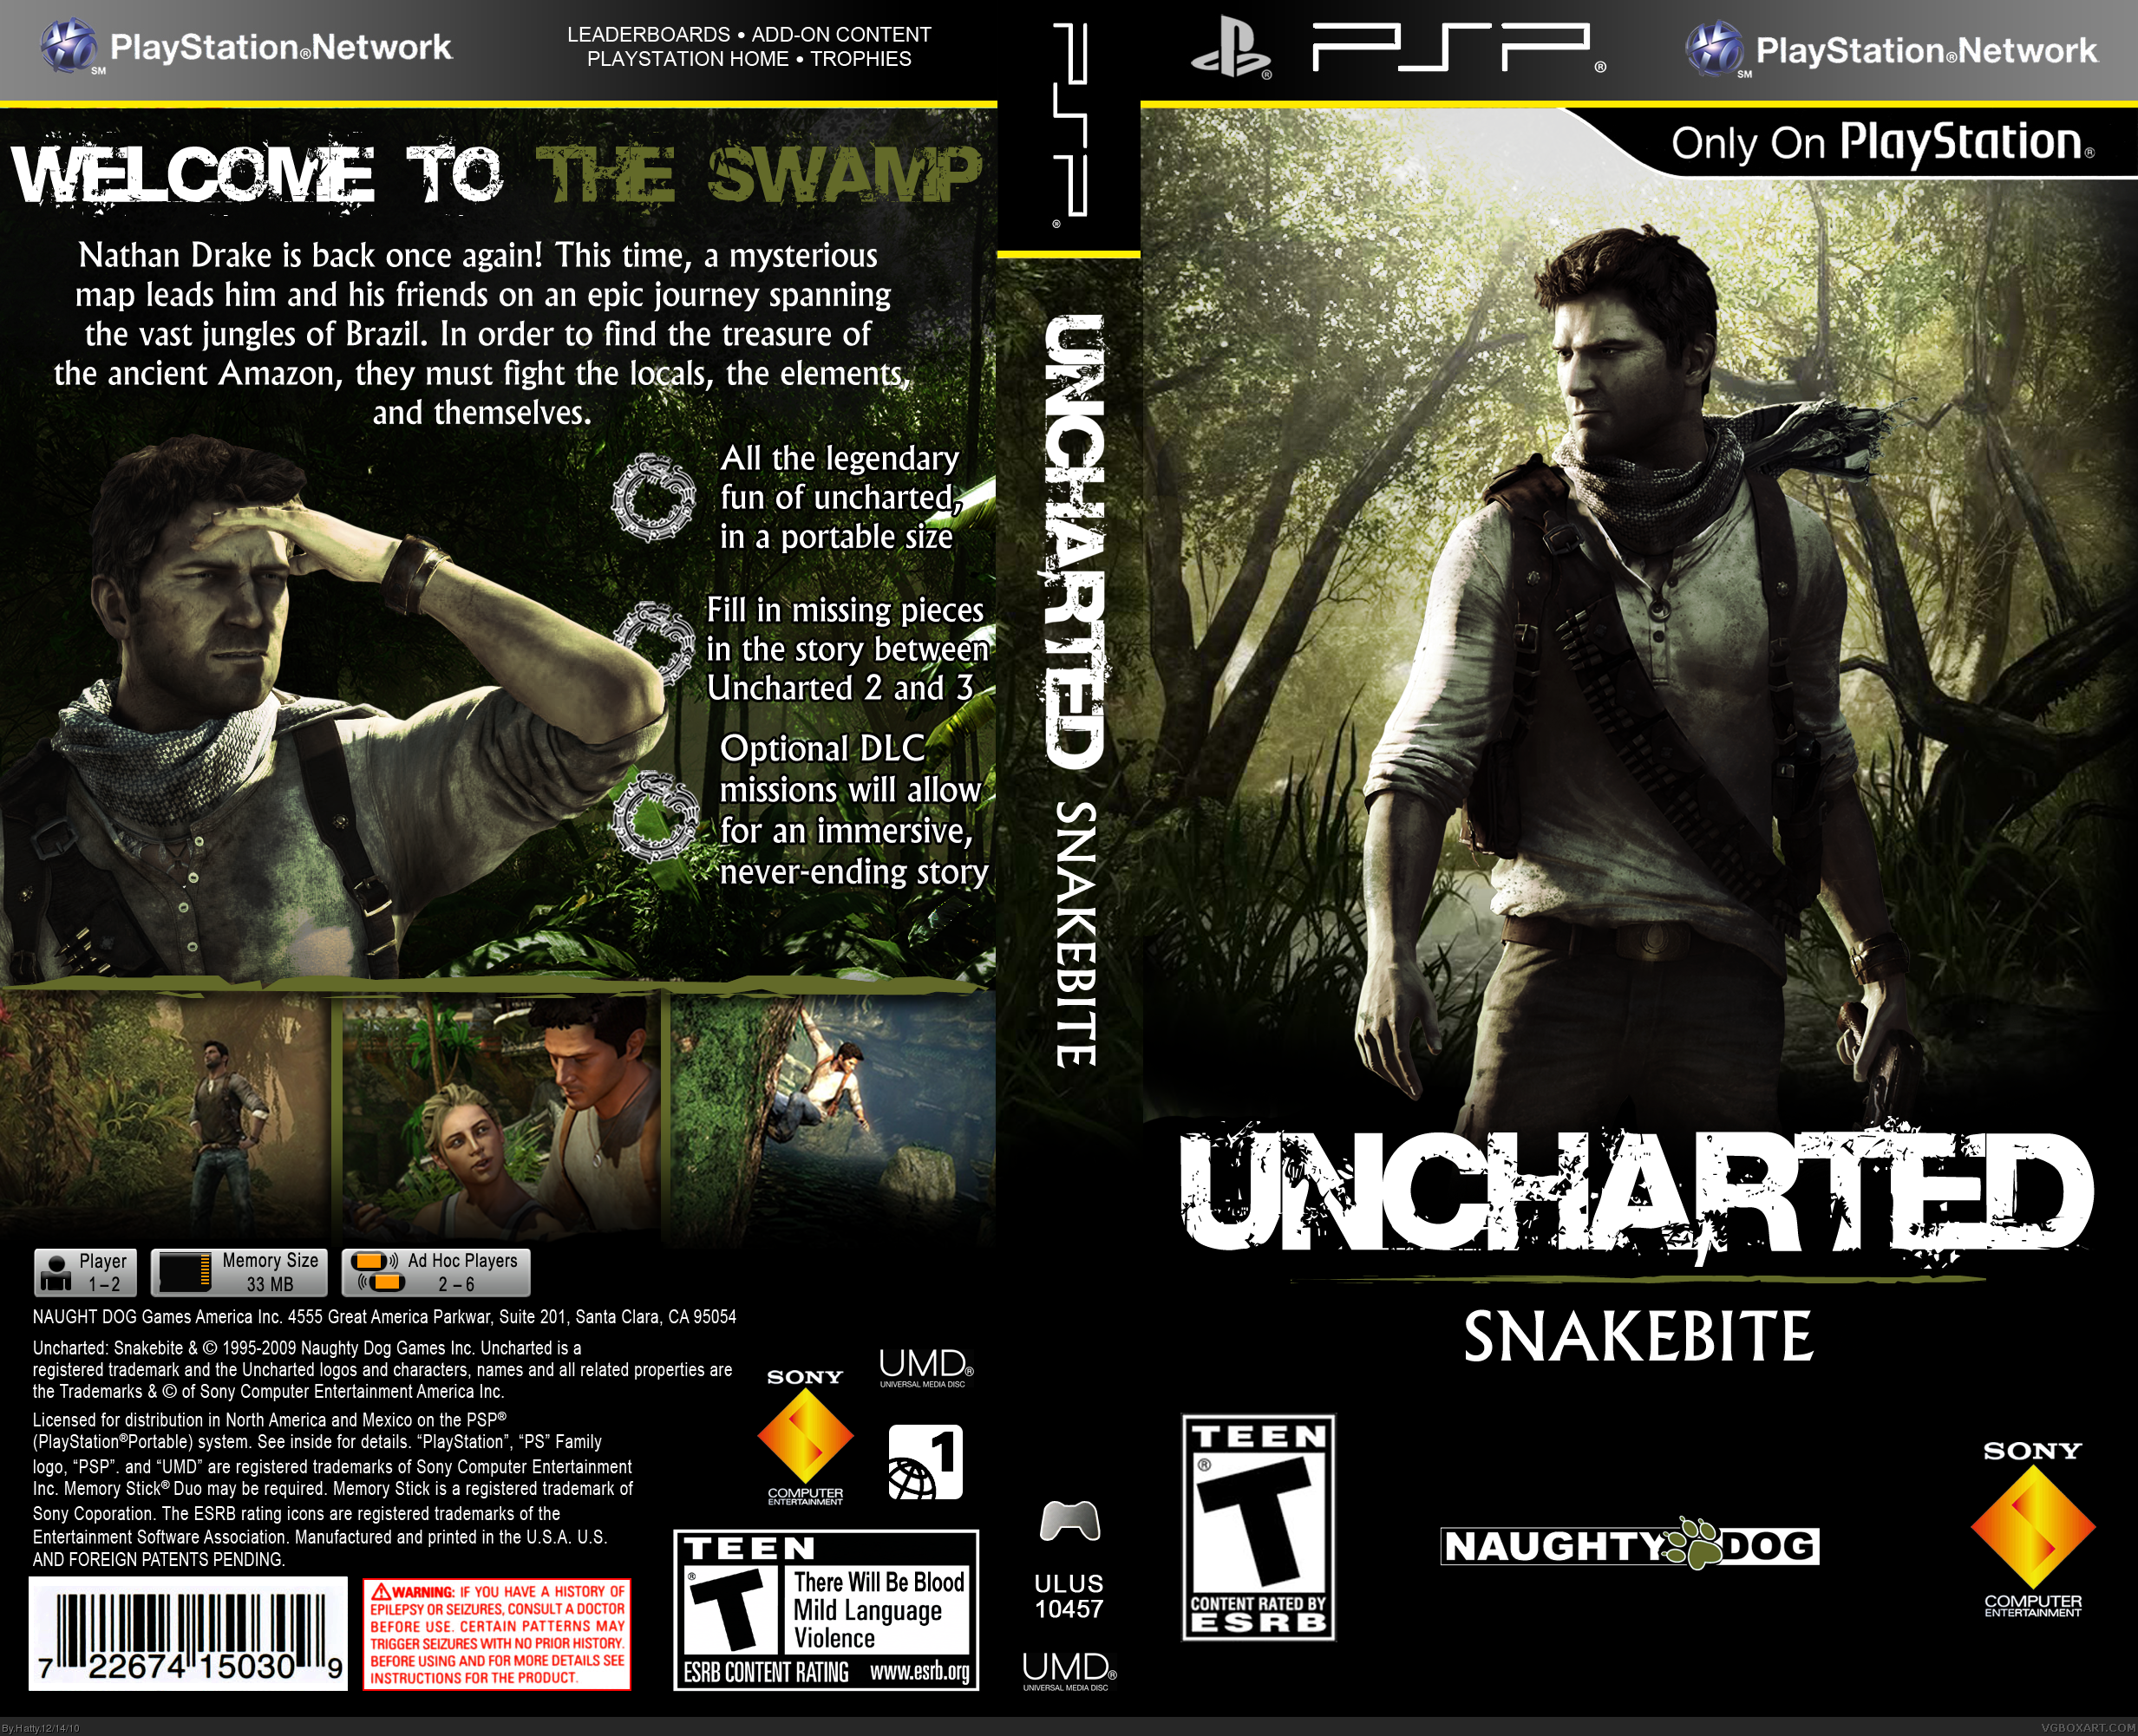 Uncharted Snakebite Psp Box Art Cover By Hatty